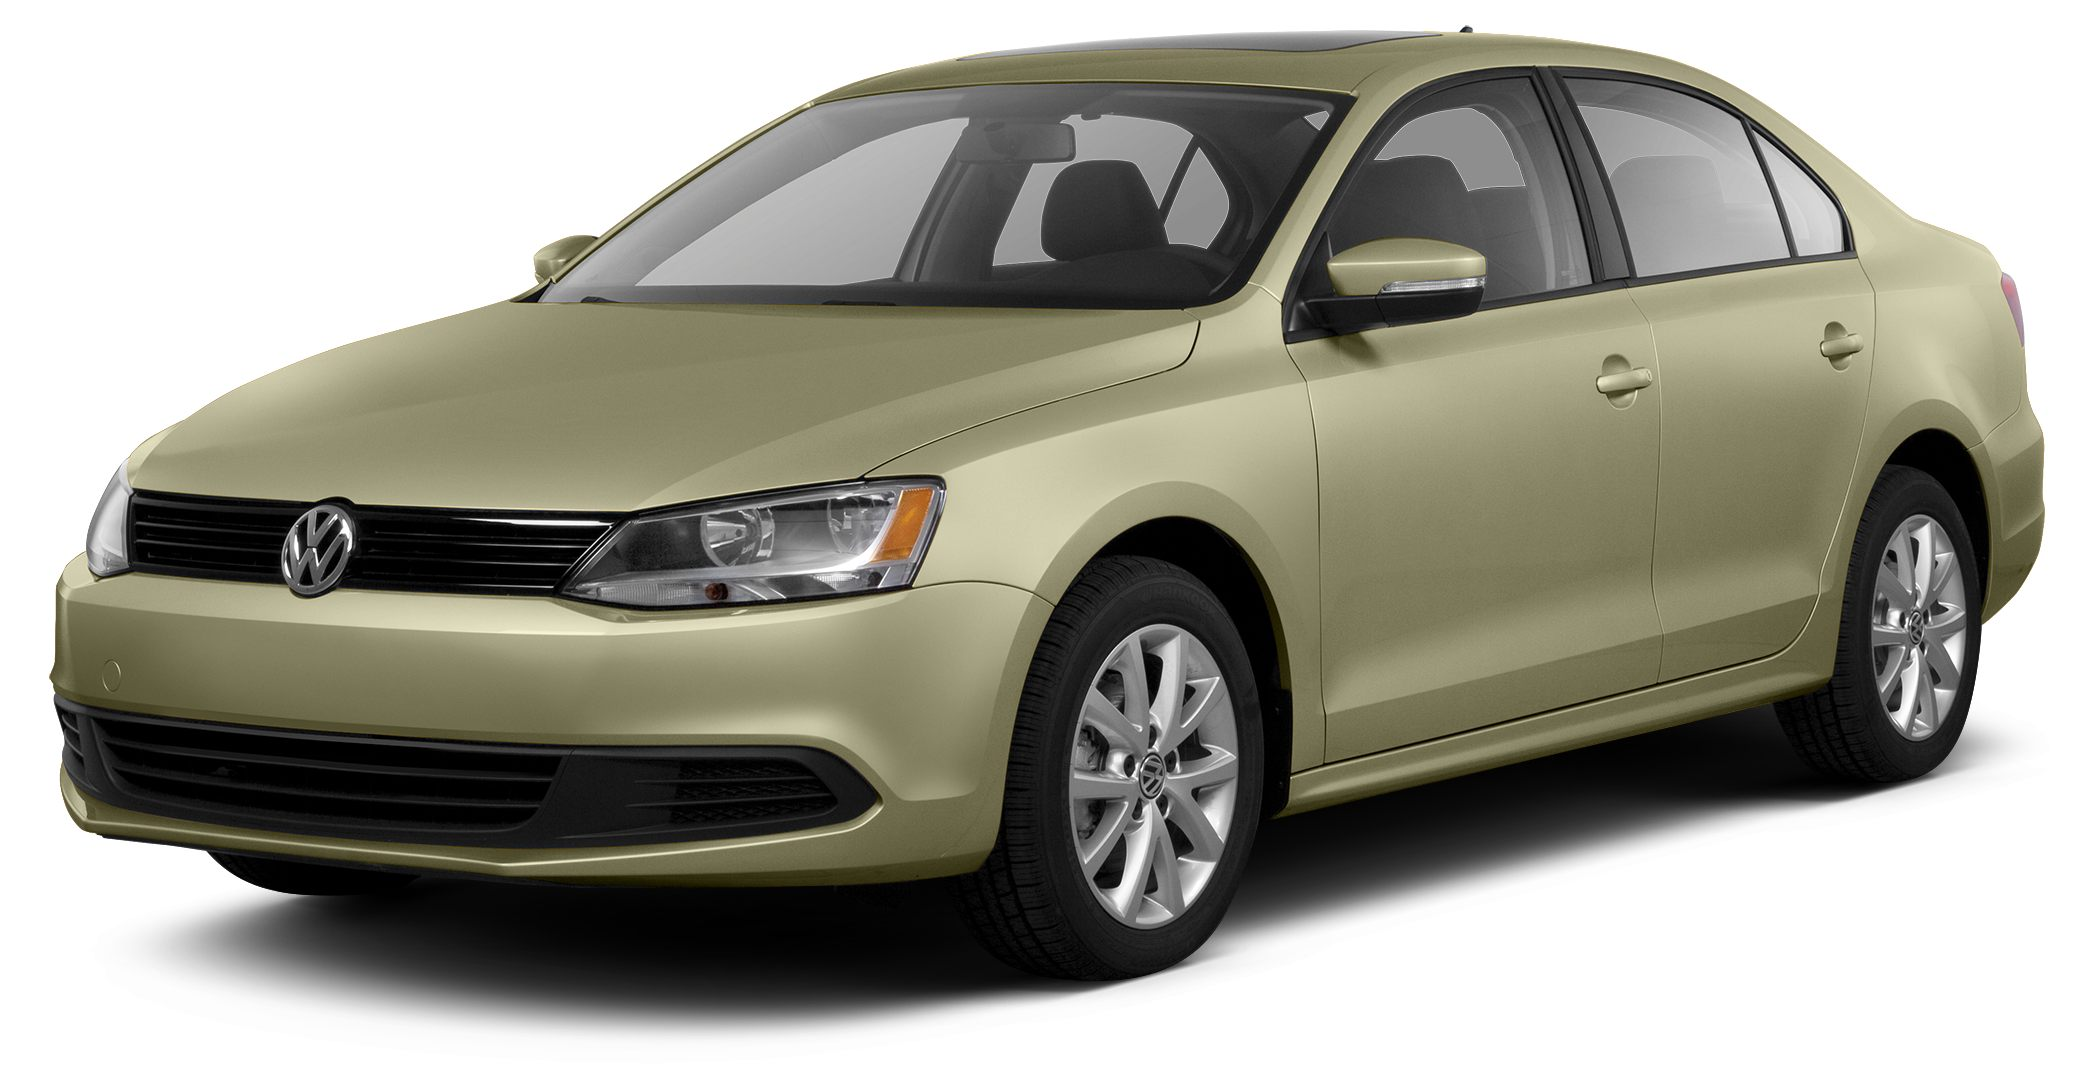 2013 Volkswagen Jetta Base CARFAX 1-OWNER VEHICLE Automatic New Arrival Price does not included